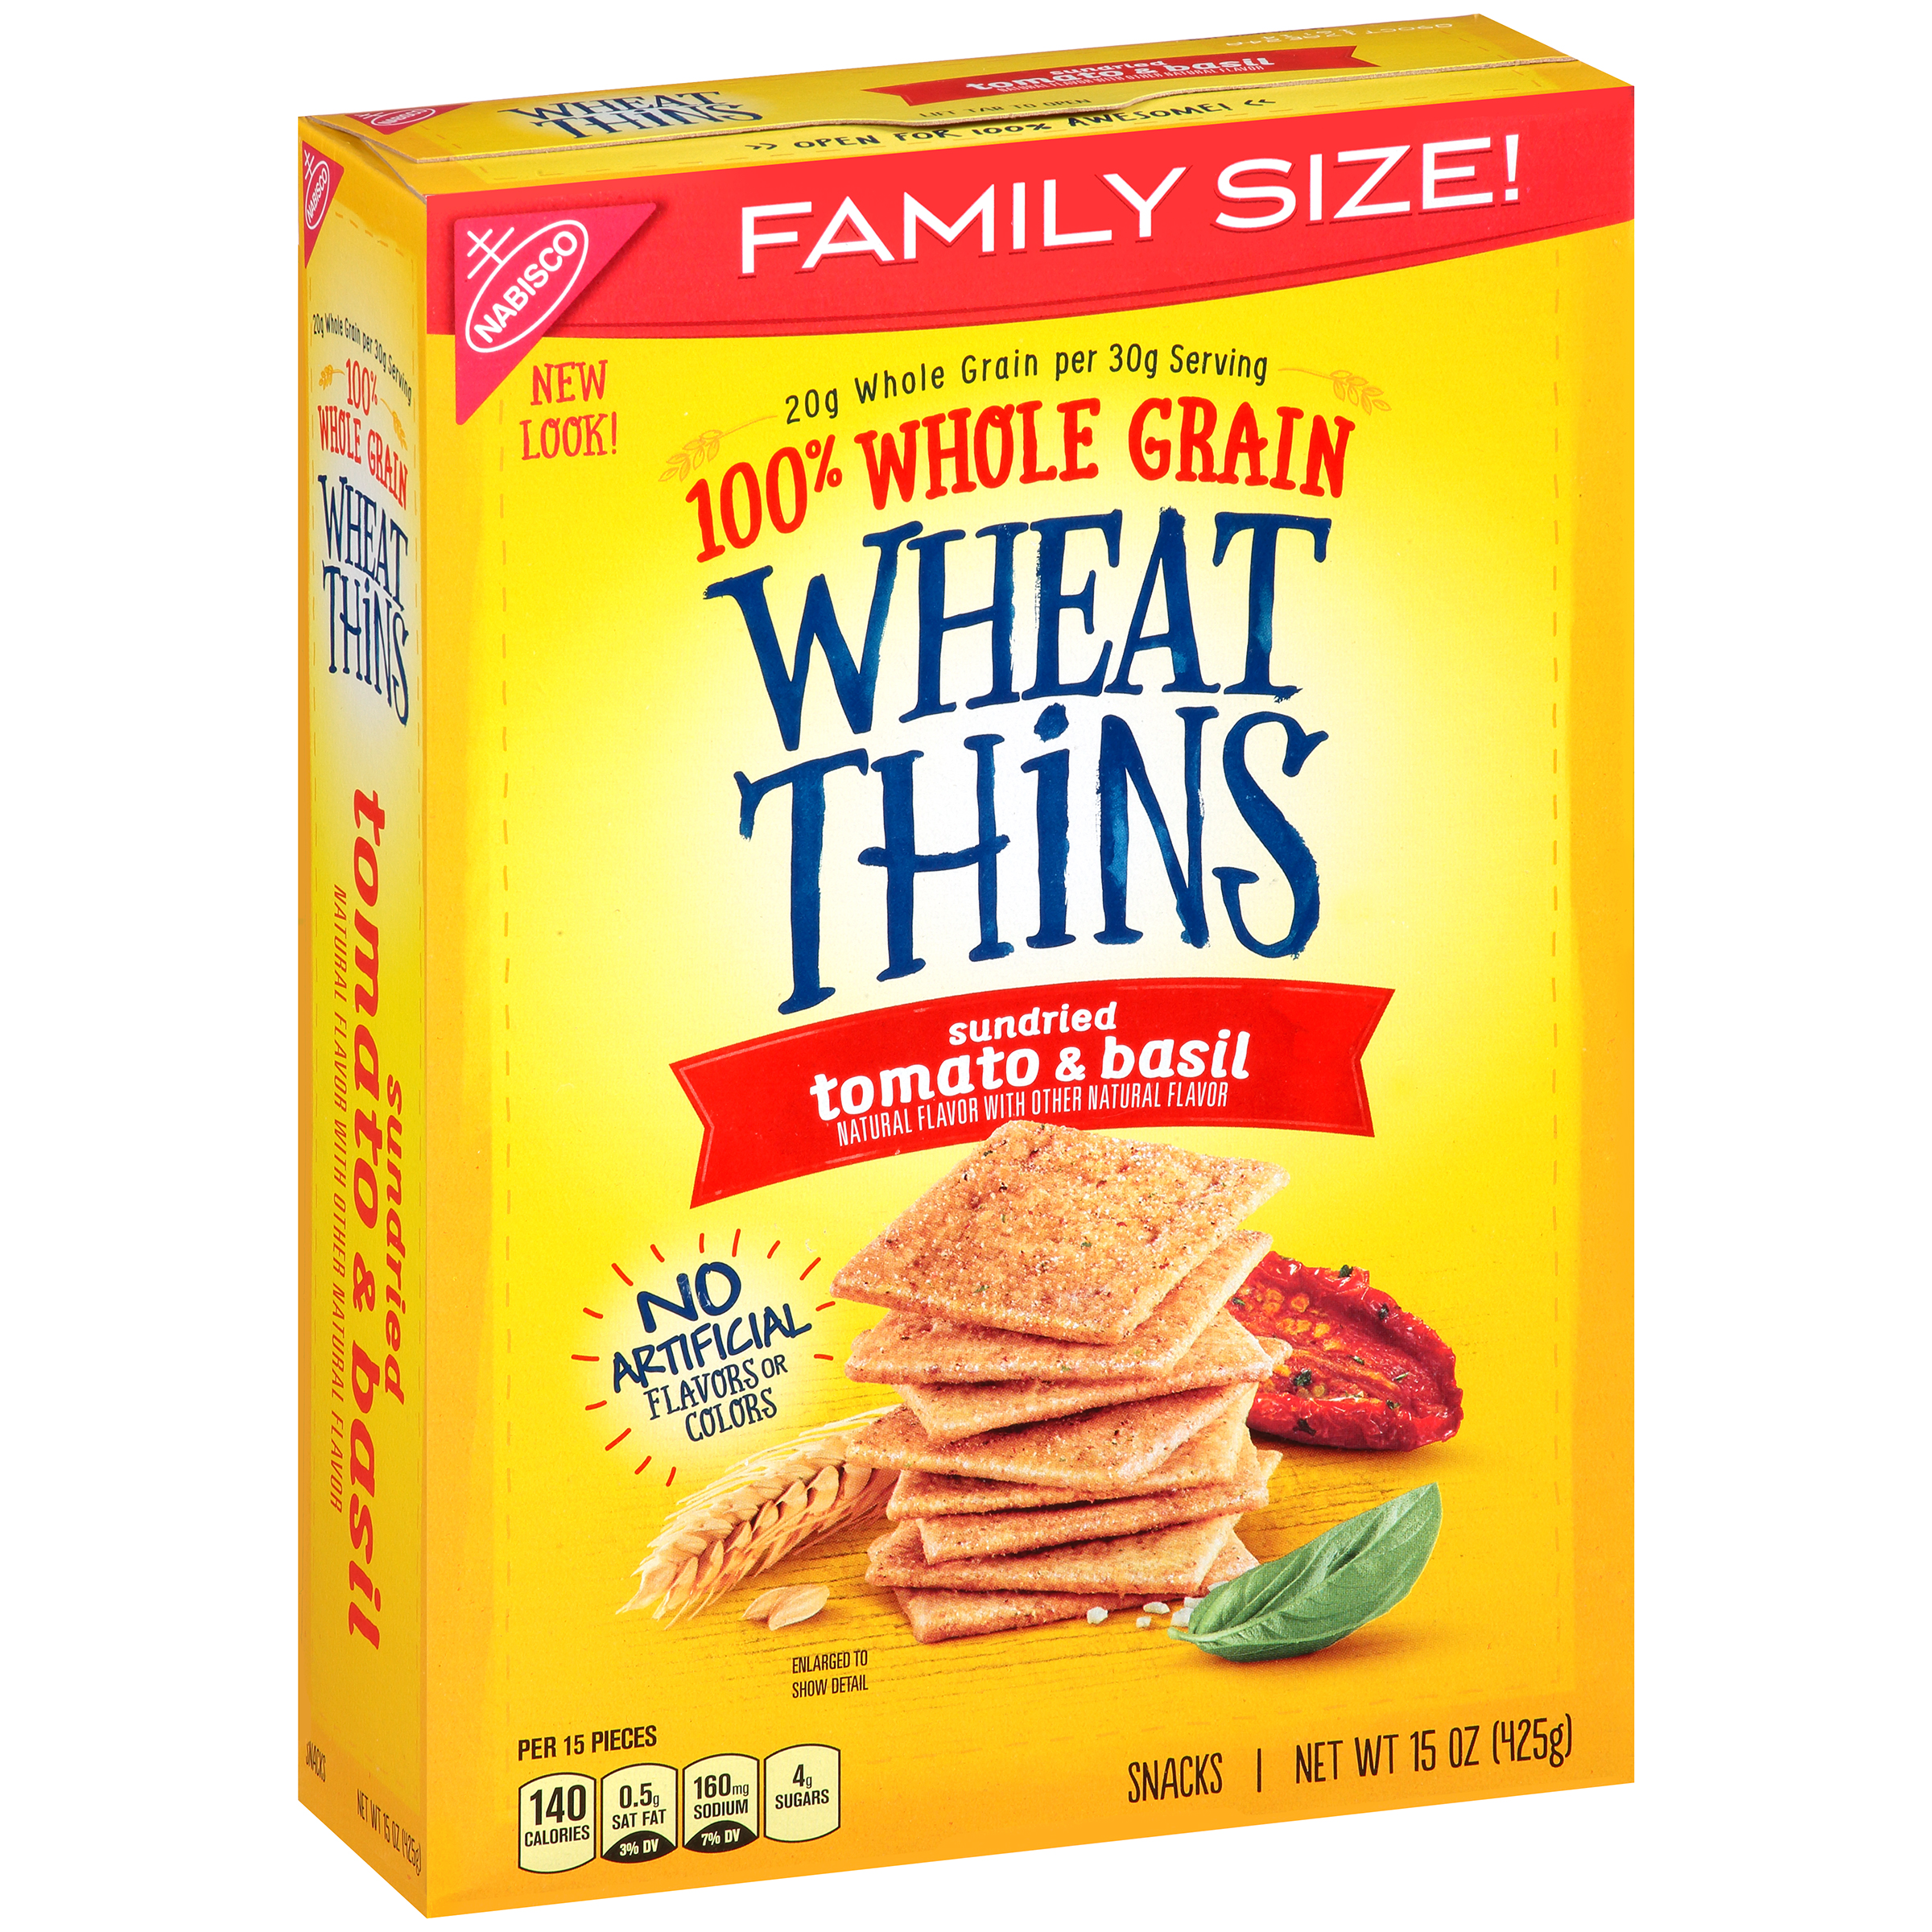 Nabisco Wheat Thins Sundried Tomato & Basil Snacks Family Size, 15 Oz.